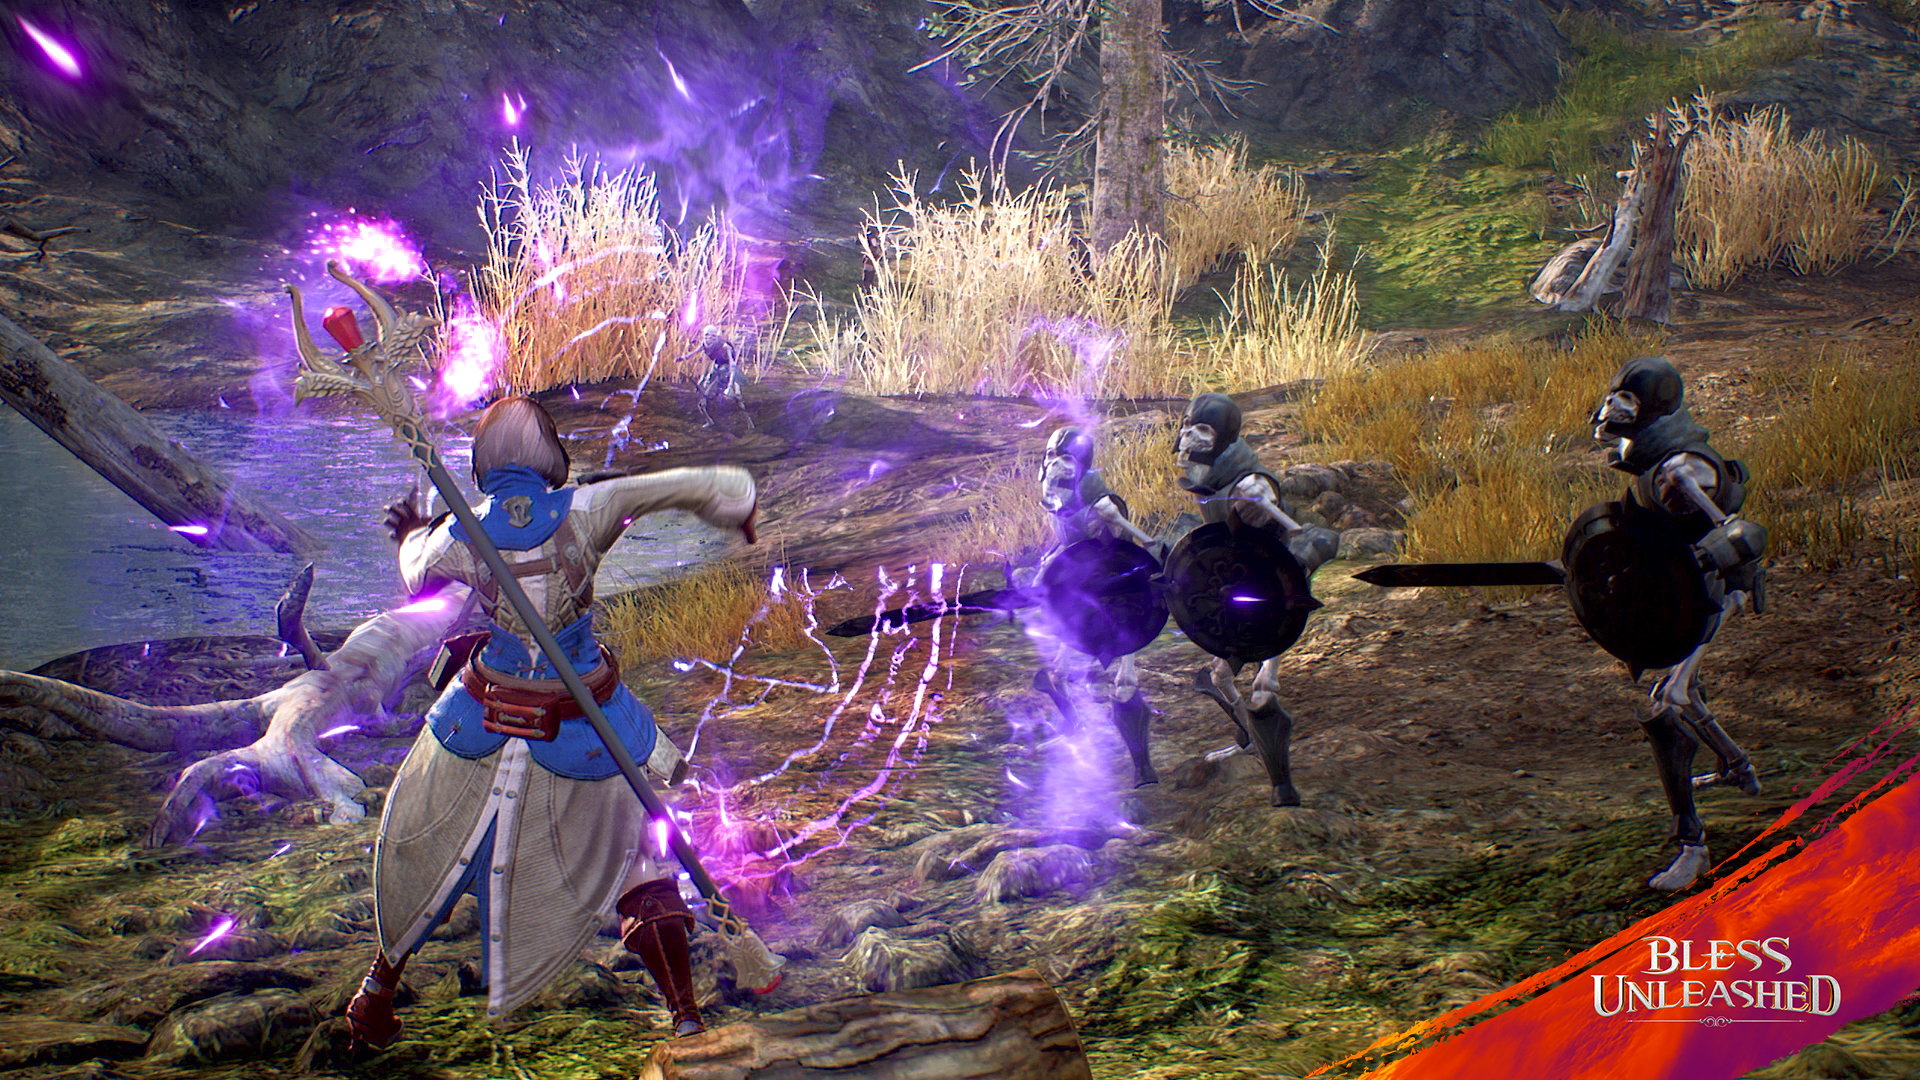 Bandai Namco announces Free-to-Play MMORPG Bless Unleashed for Xbox